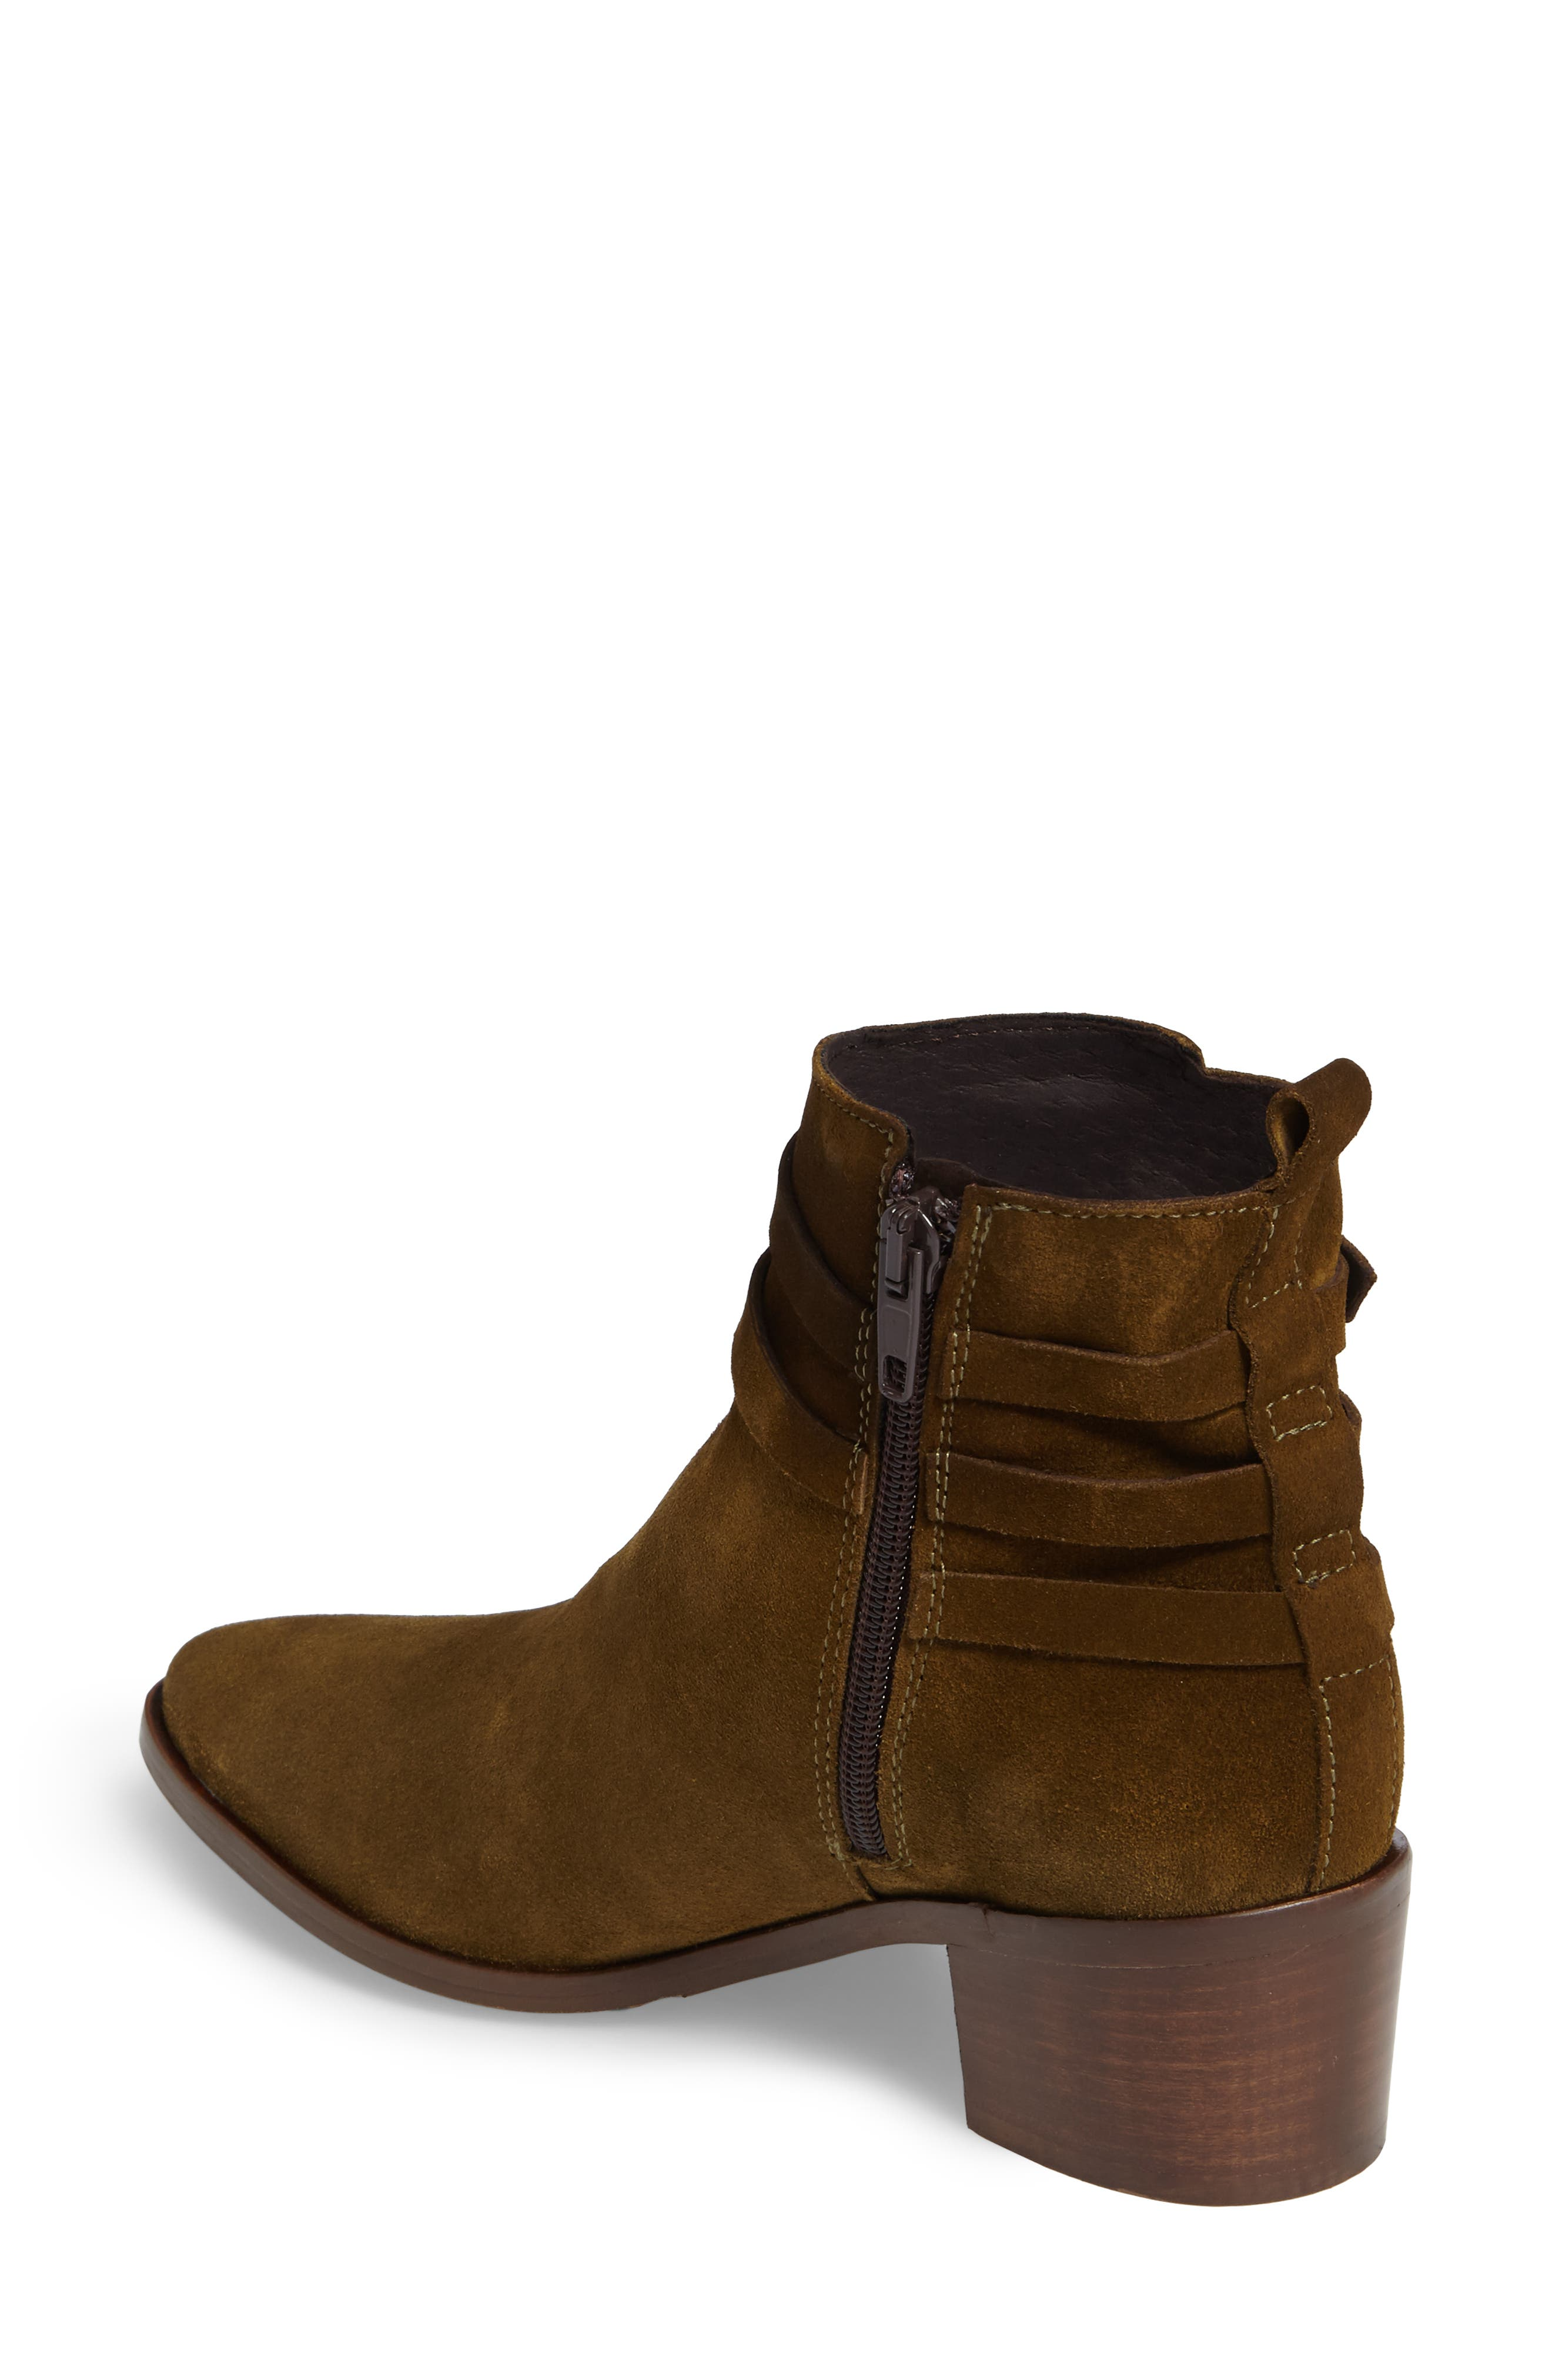 Hunter Bootie,                             Alternate thumbnail 2, color,                             Khaki Suede